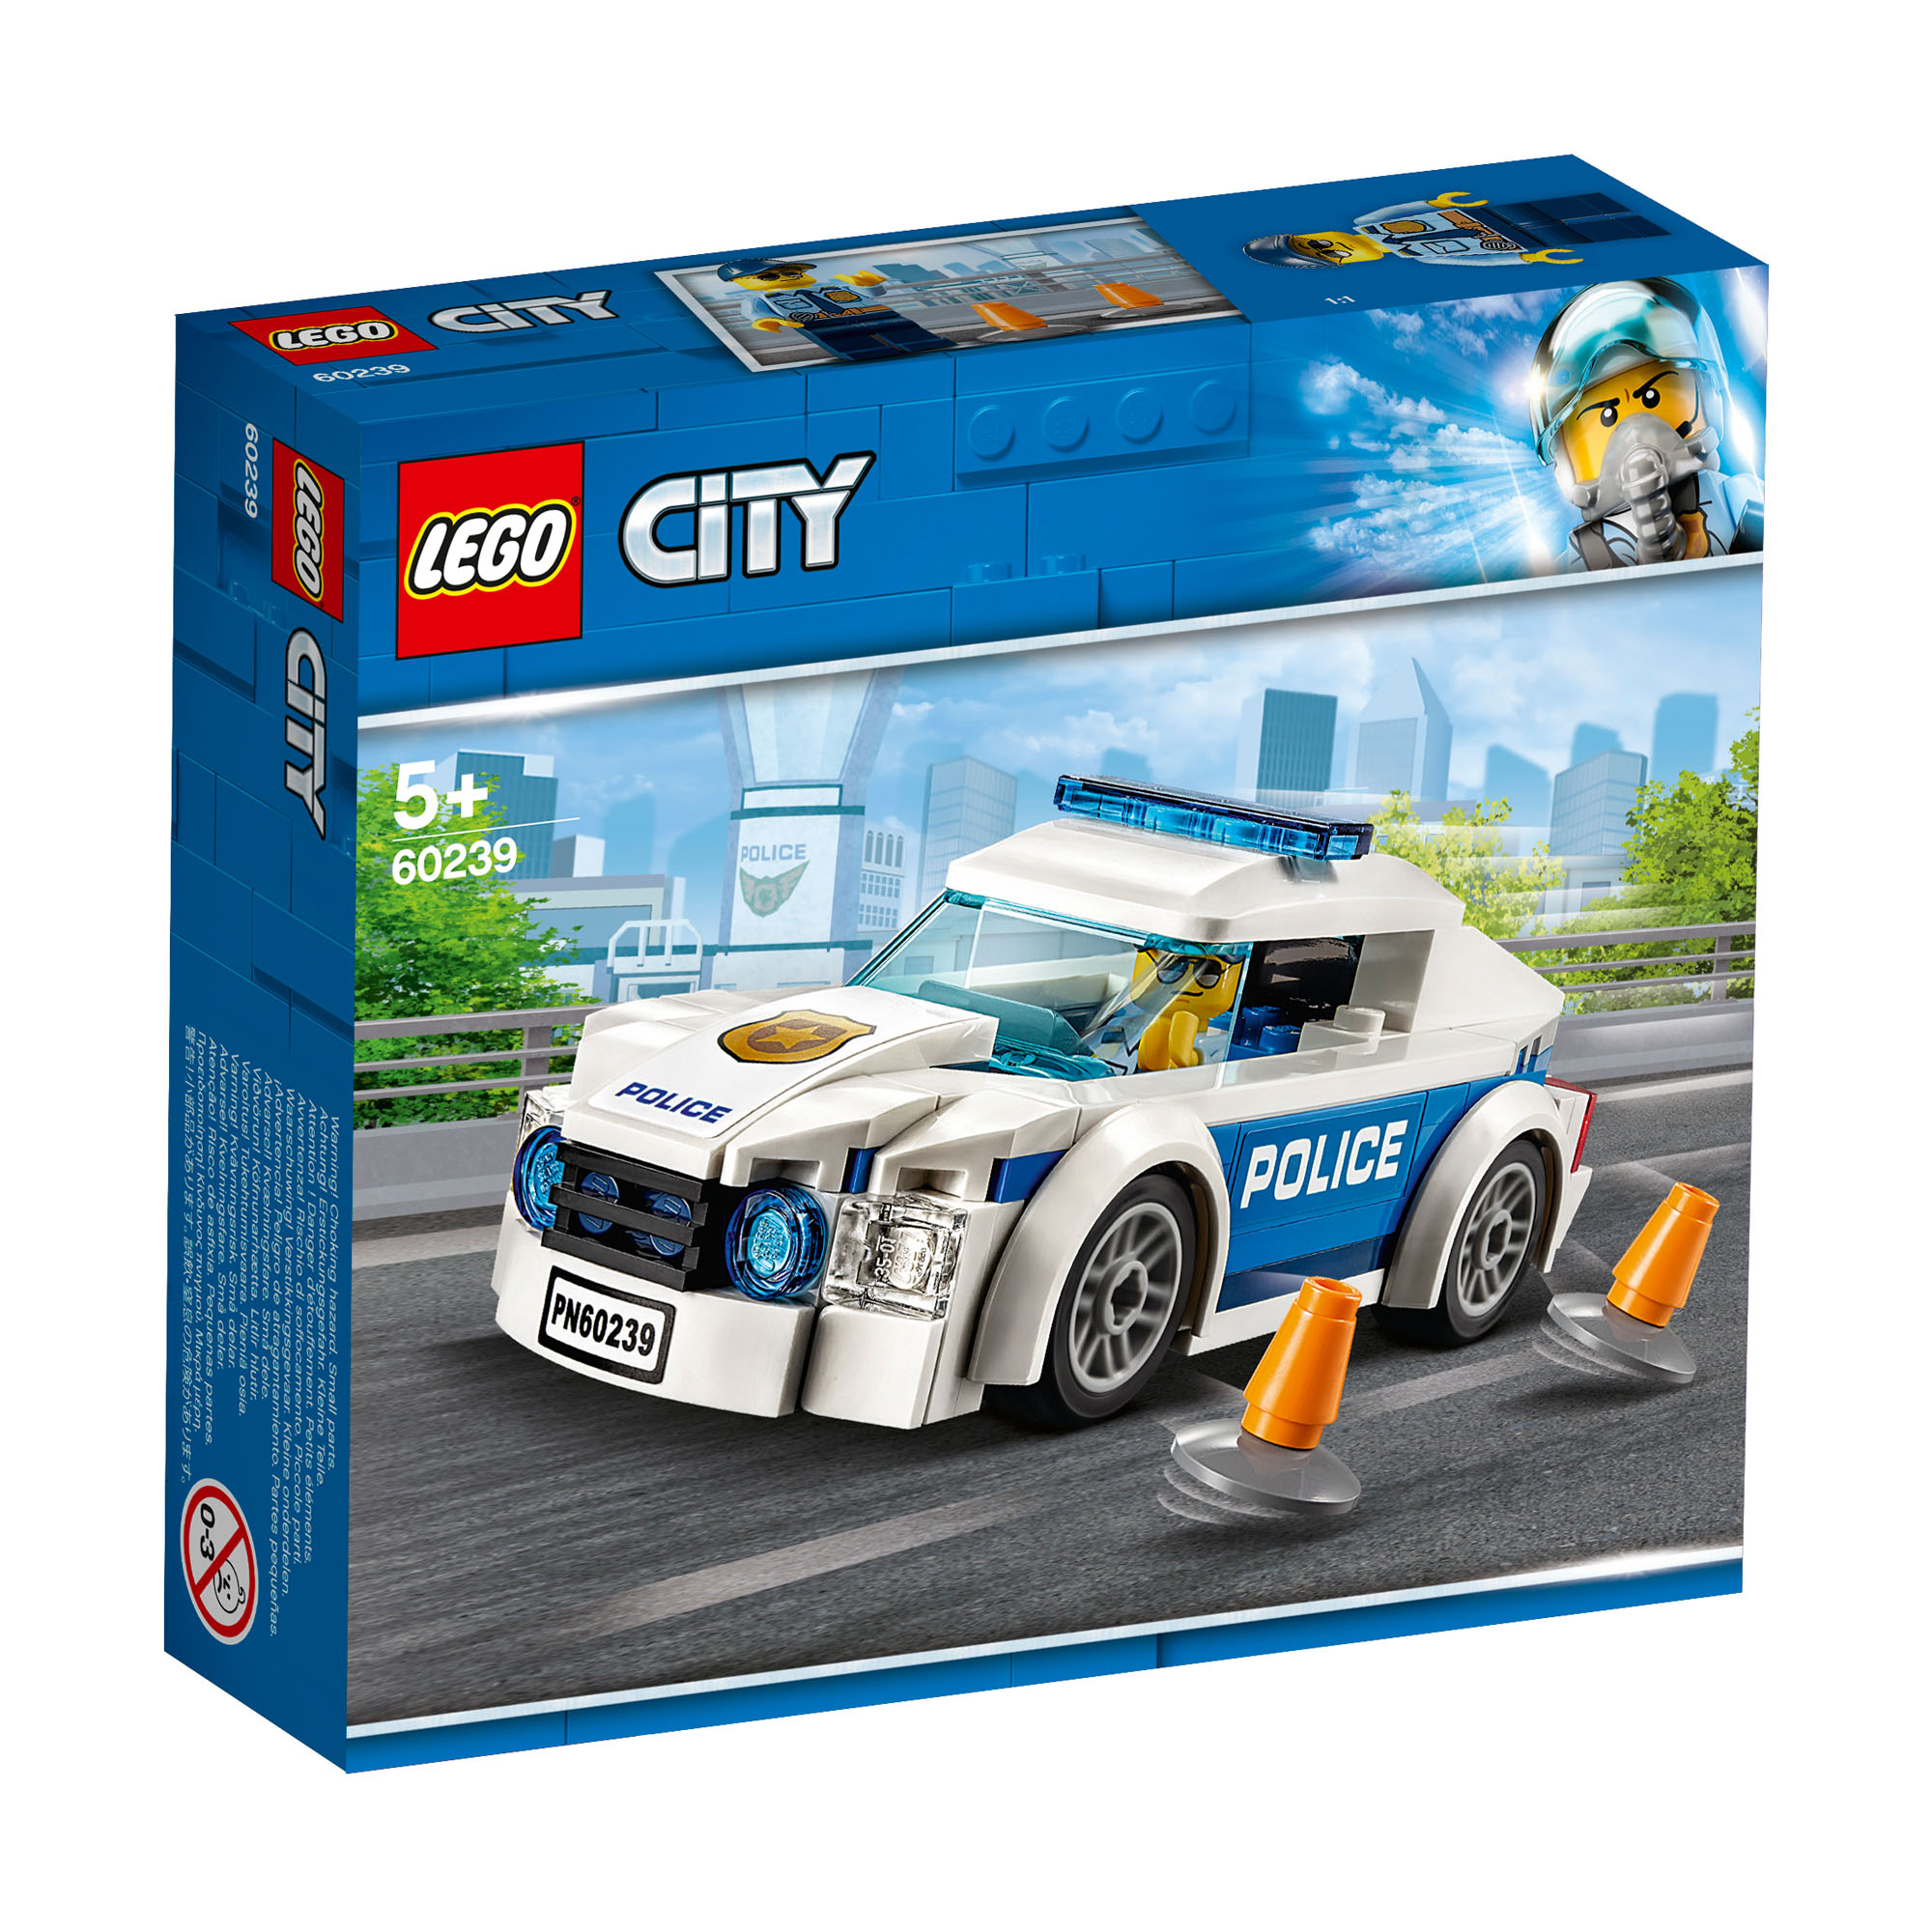 Details about 60239 LEGO CITY Police Patrol Car 92 Pieces Age 5+ New  Release for 2019!